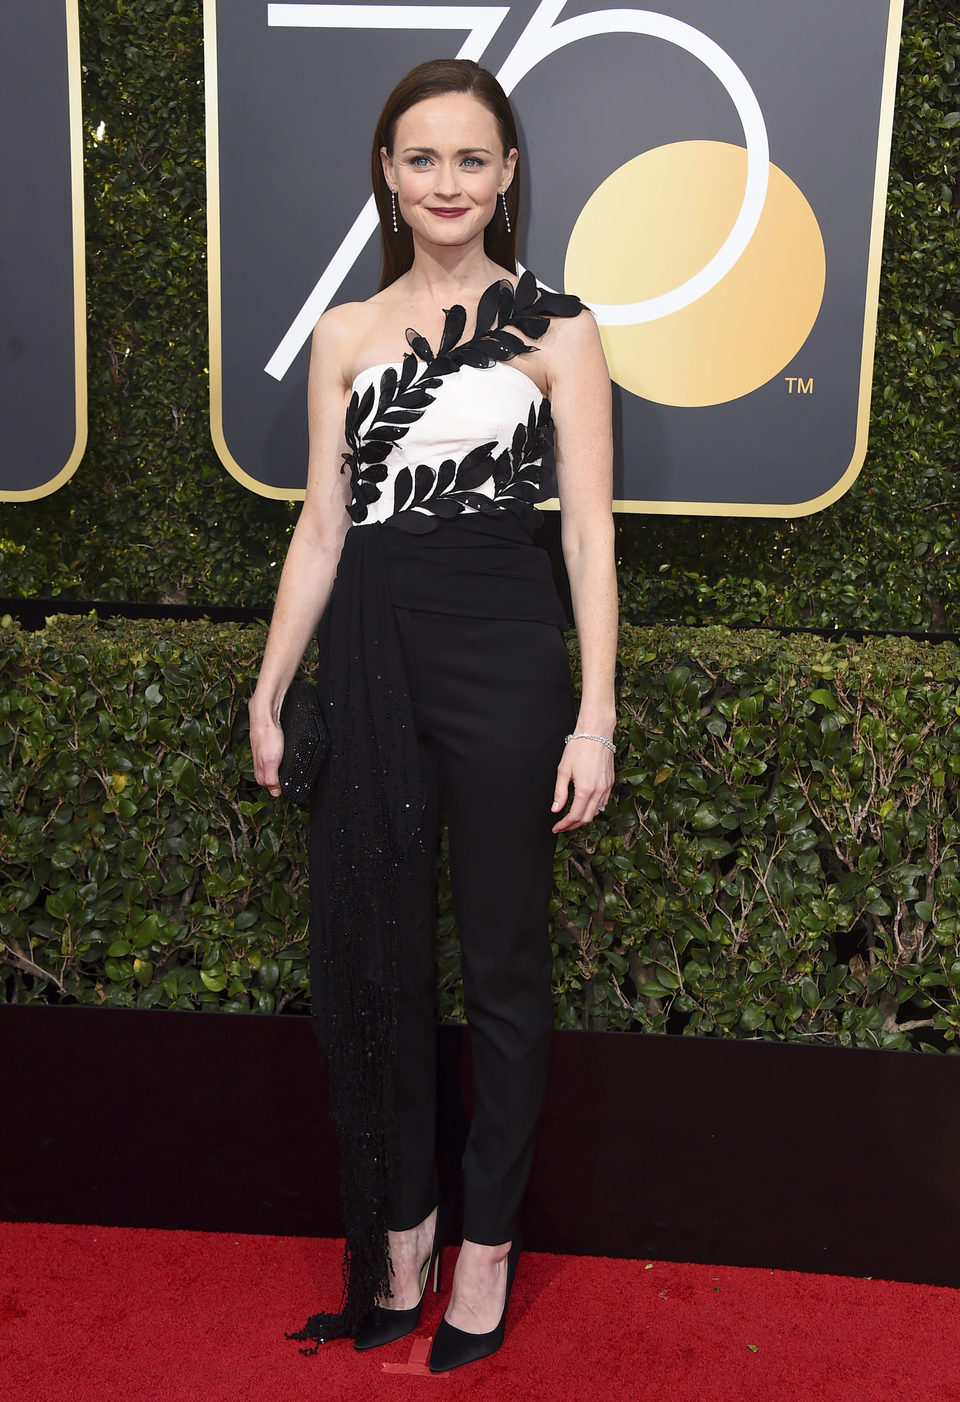 Alexis Bledel at the Golden Globe's red capert 2018